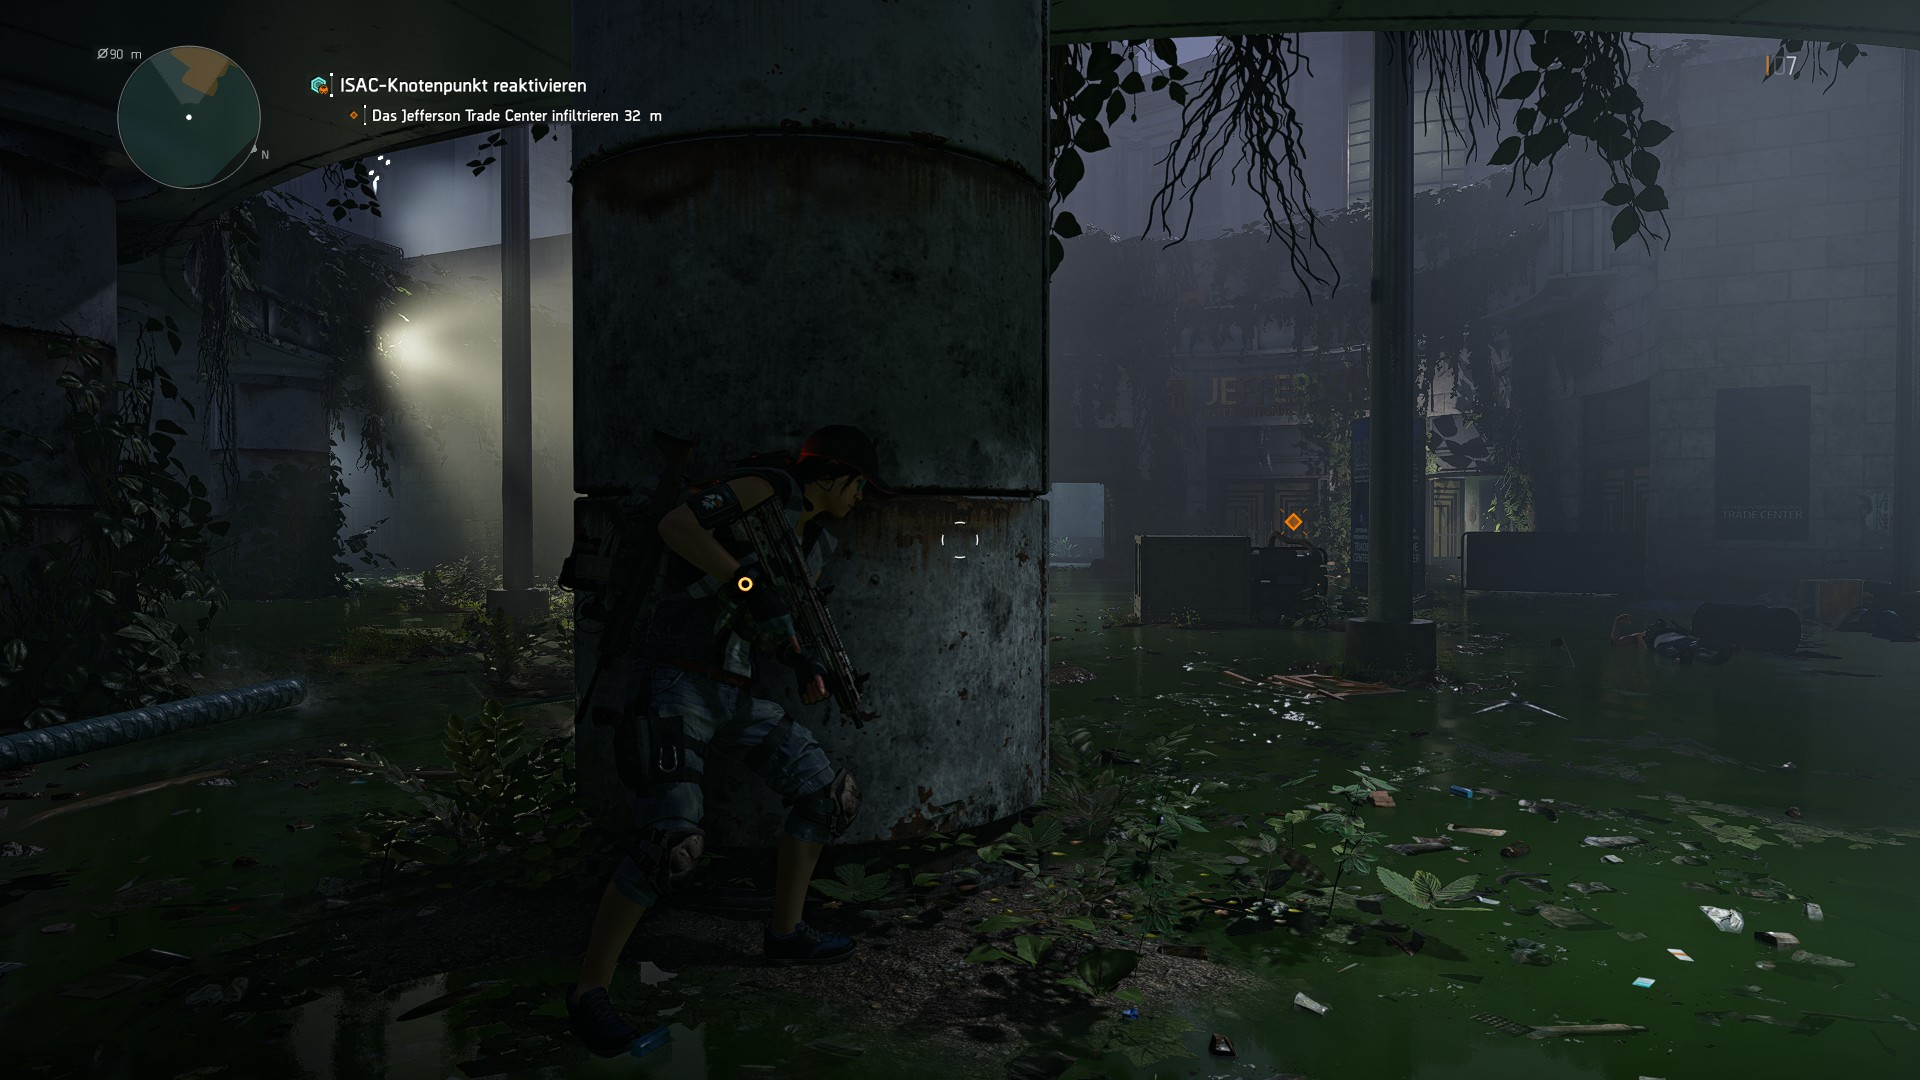 Tom Clancy's The Division® 22019-5-7-2-12-4.jpg